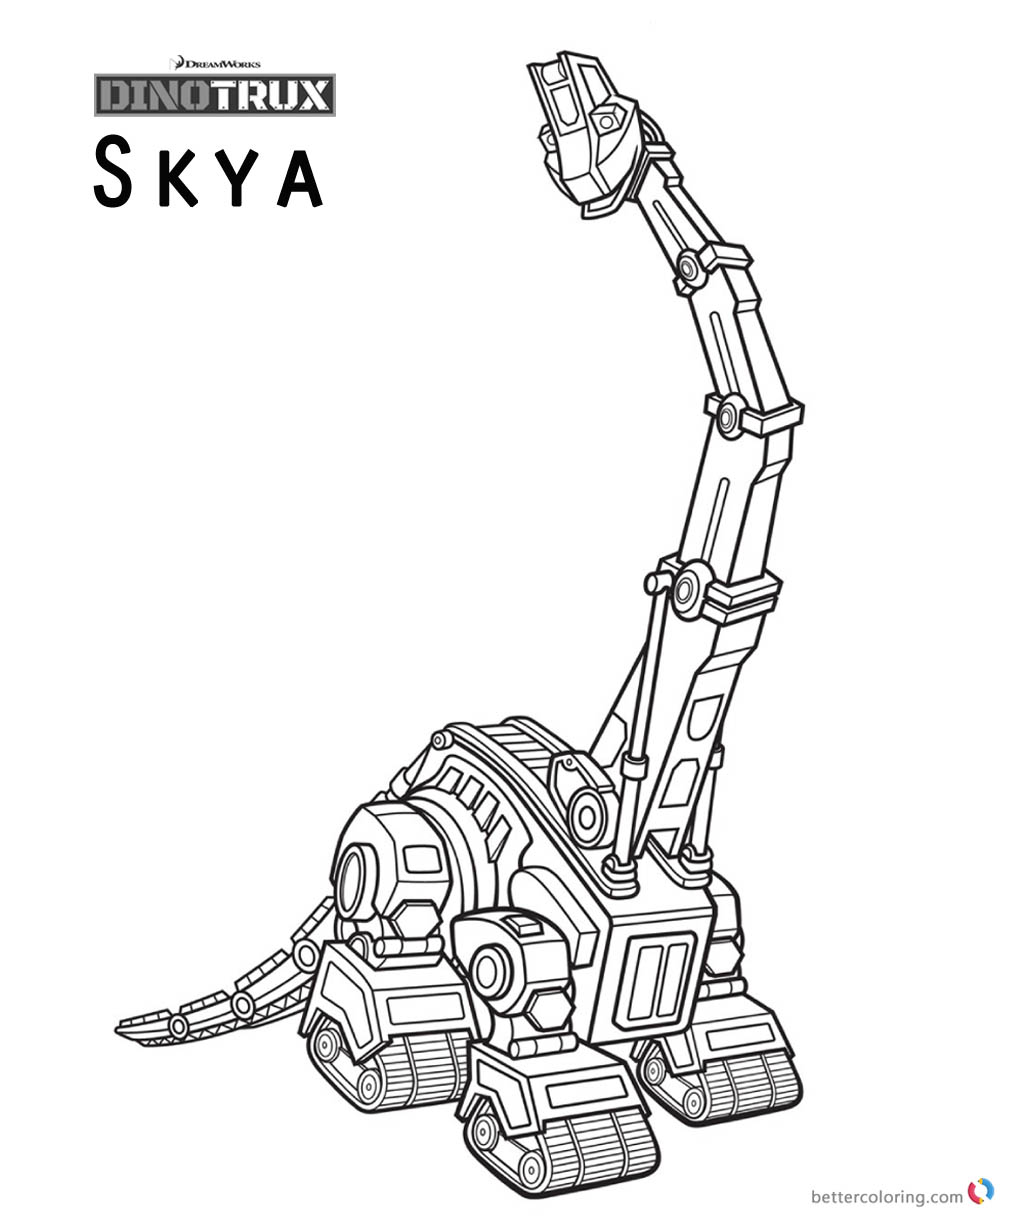 Dinotrux Skya coloring pages printable